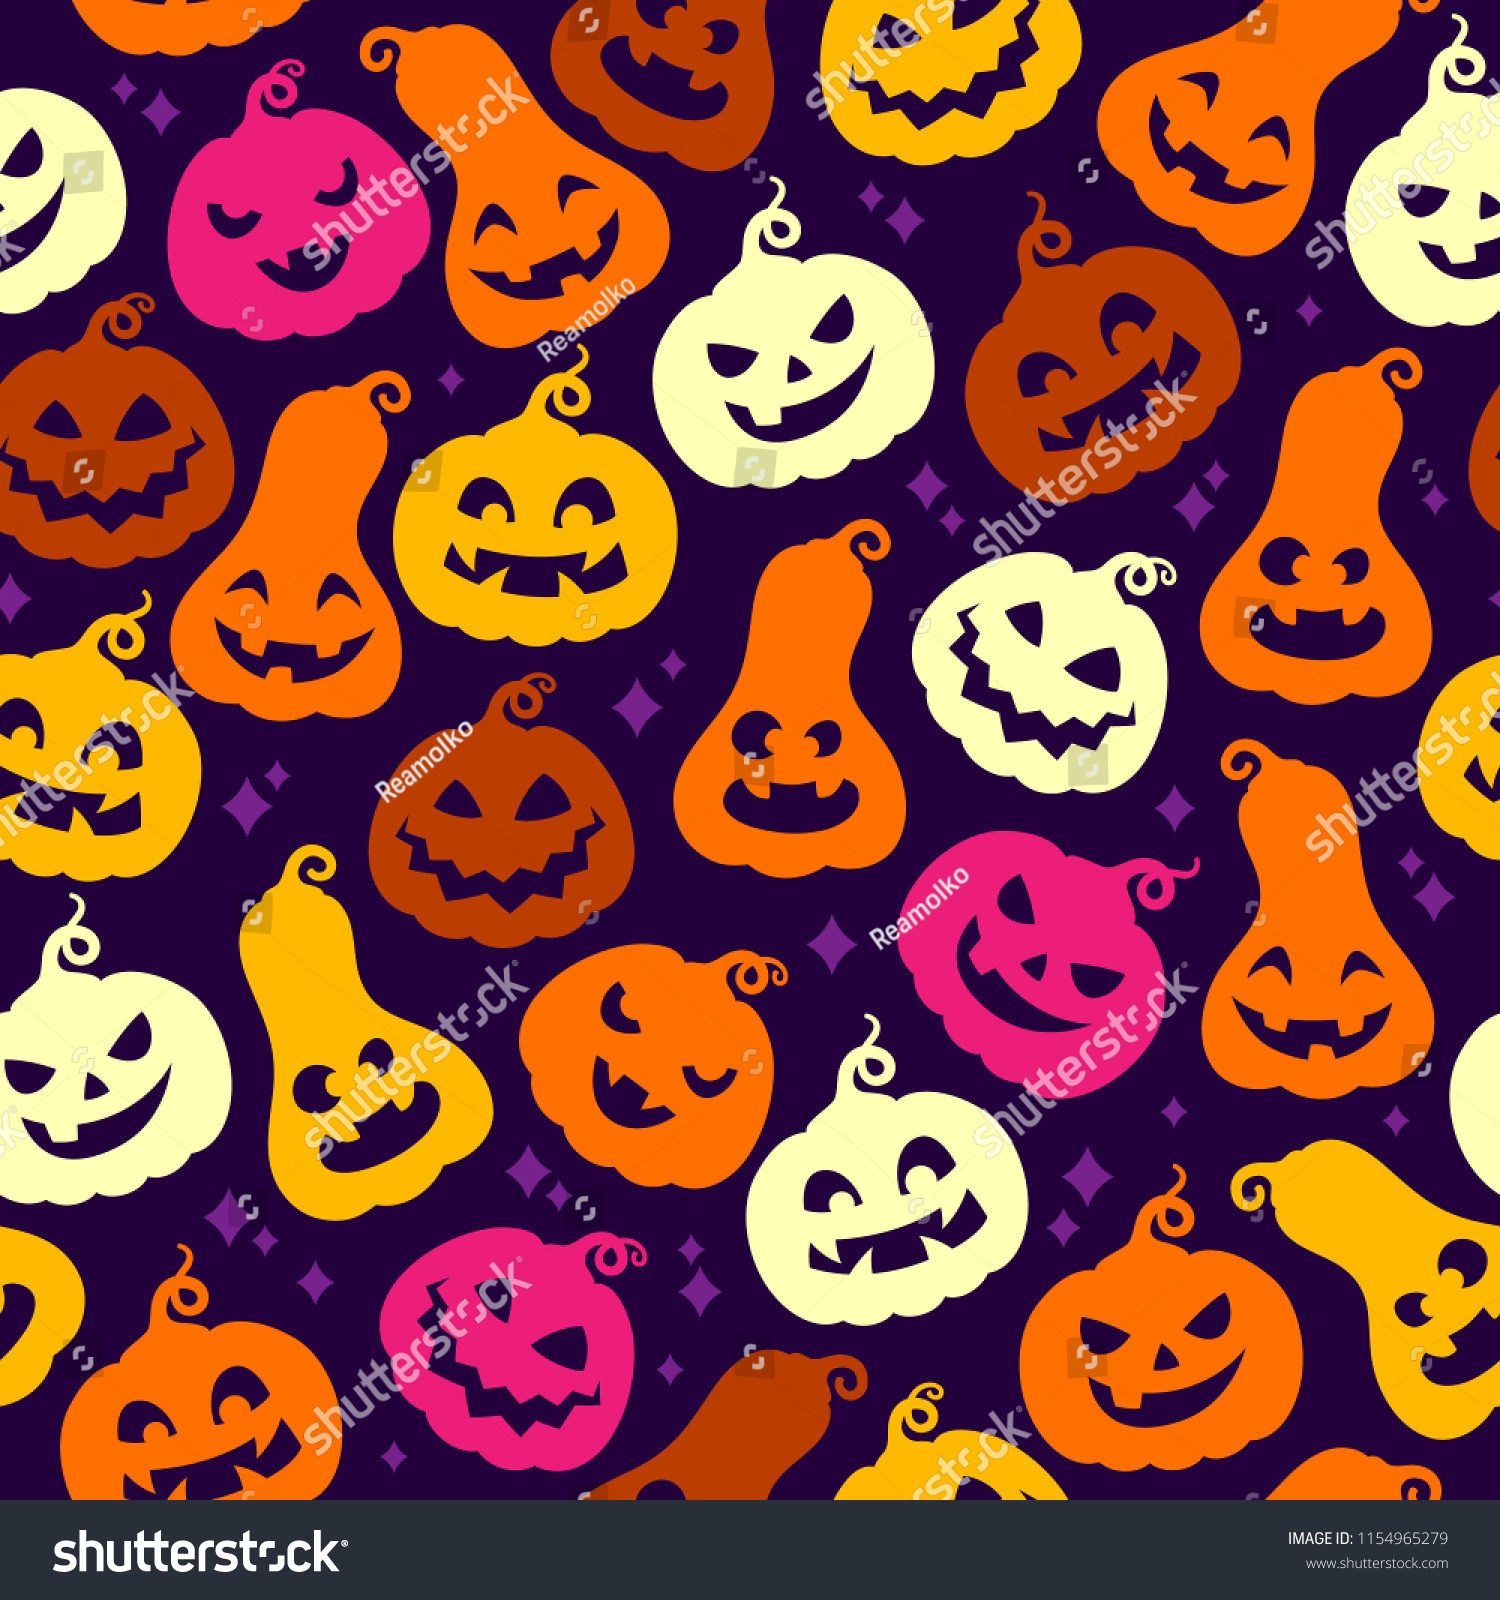 Cute Pumpkins Seamless Colorful Pattern Halloween Stock Illustration